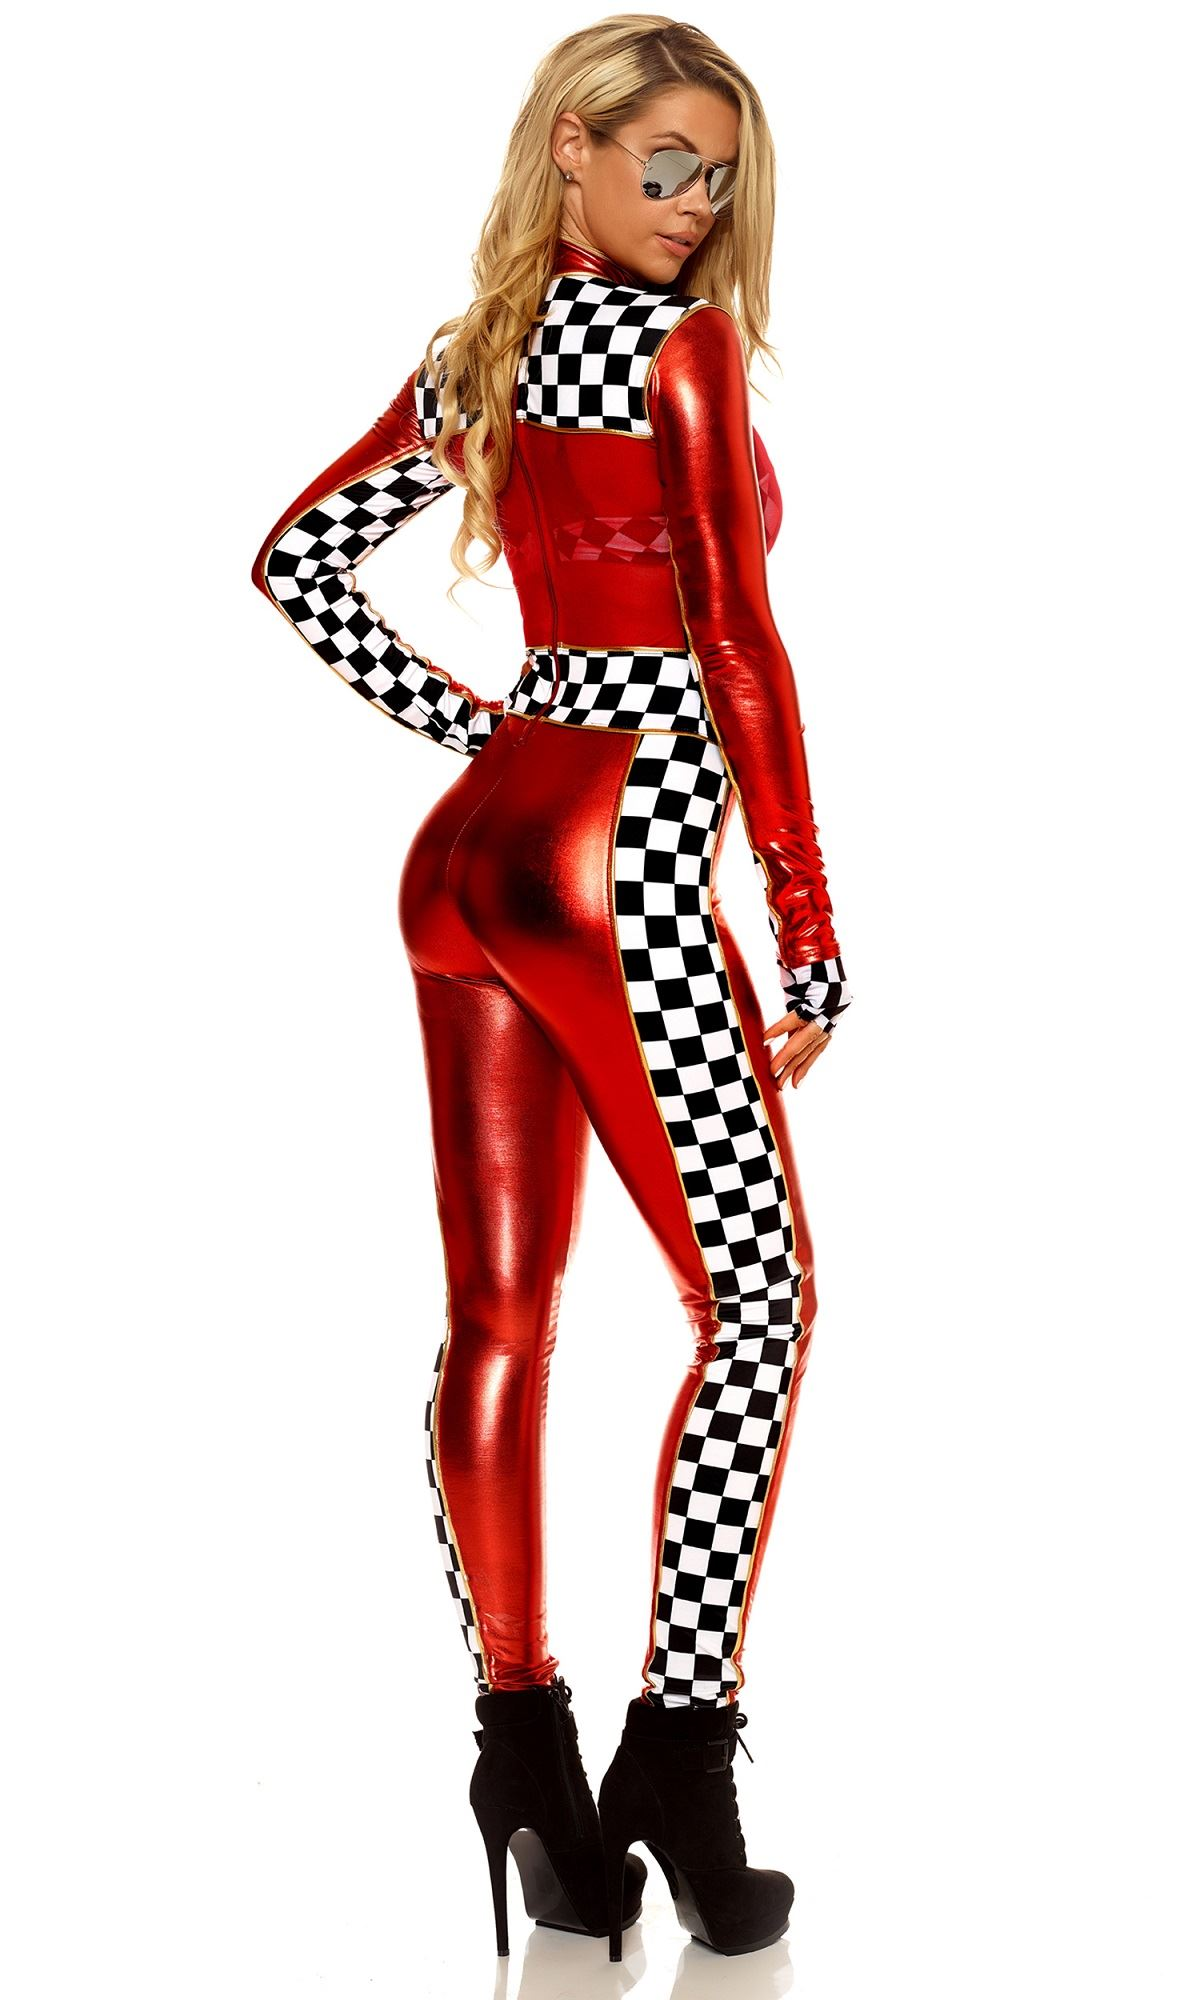 Adult Racer First Place Woman Costume | $78.45 | The ...